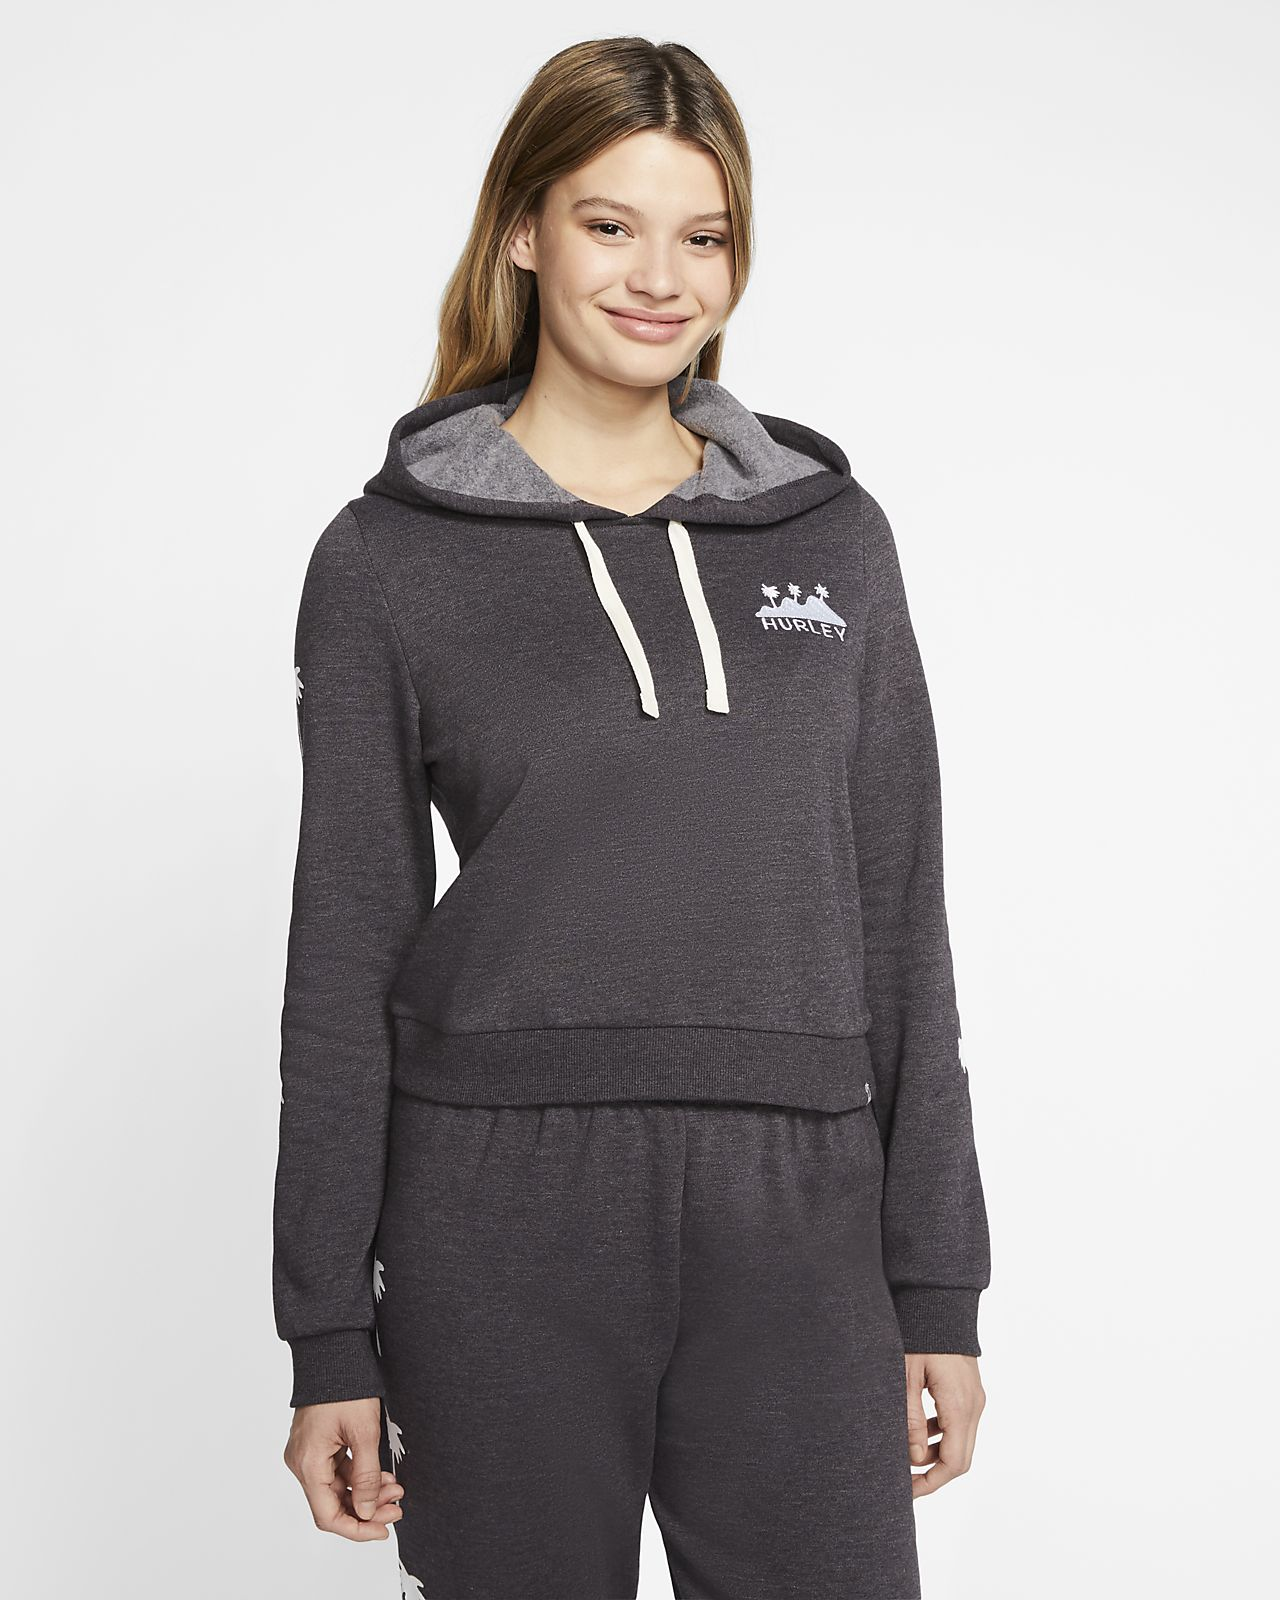 Hurley Lost Horizons Perfect Women's Cropped Fleece Pullover